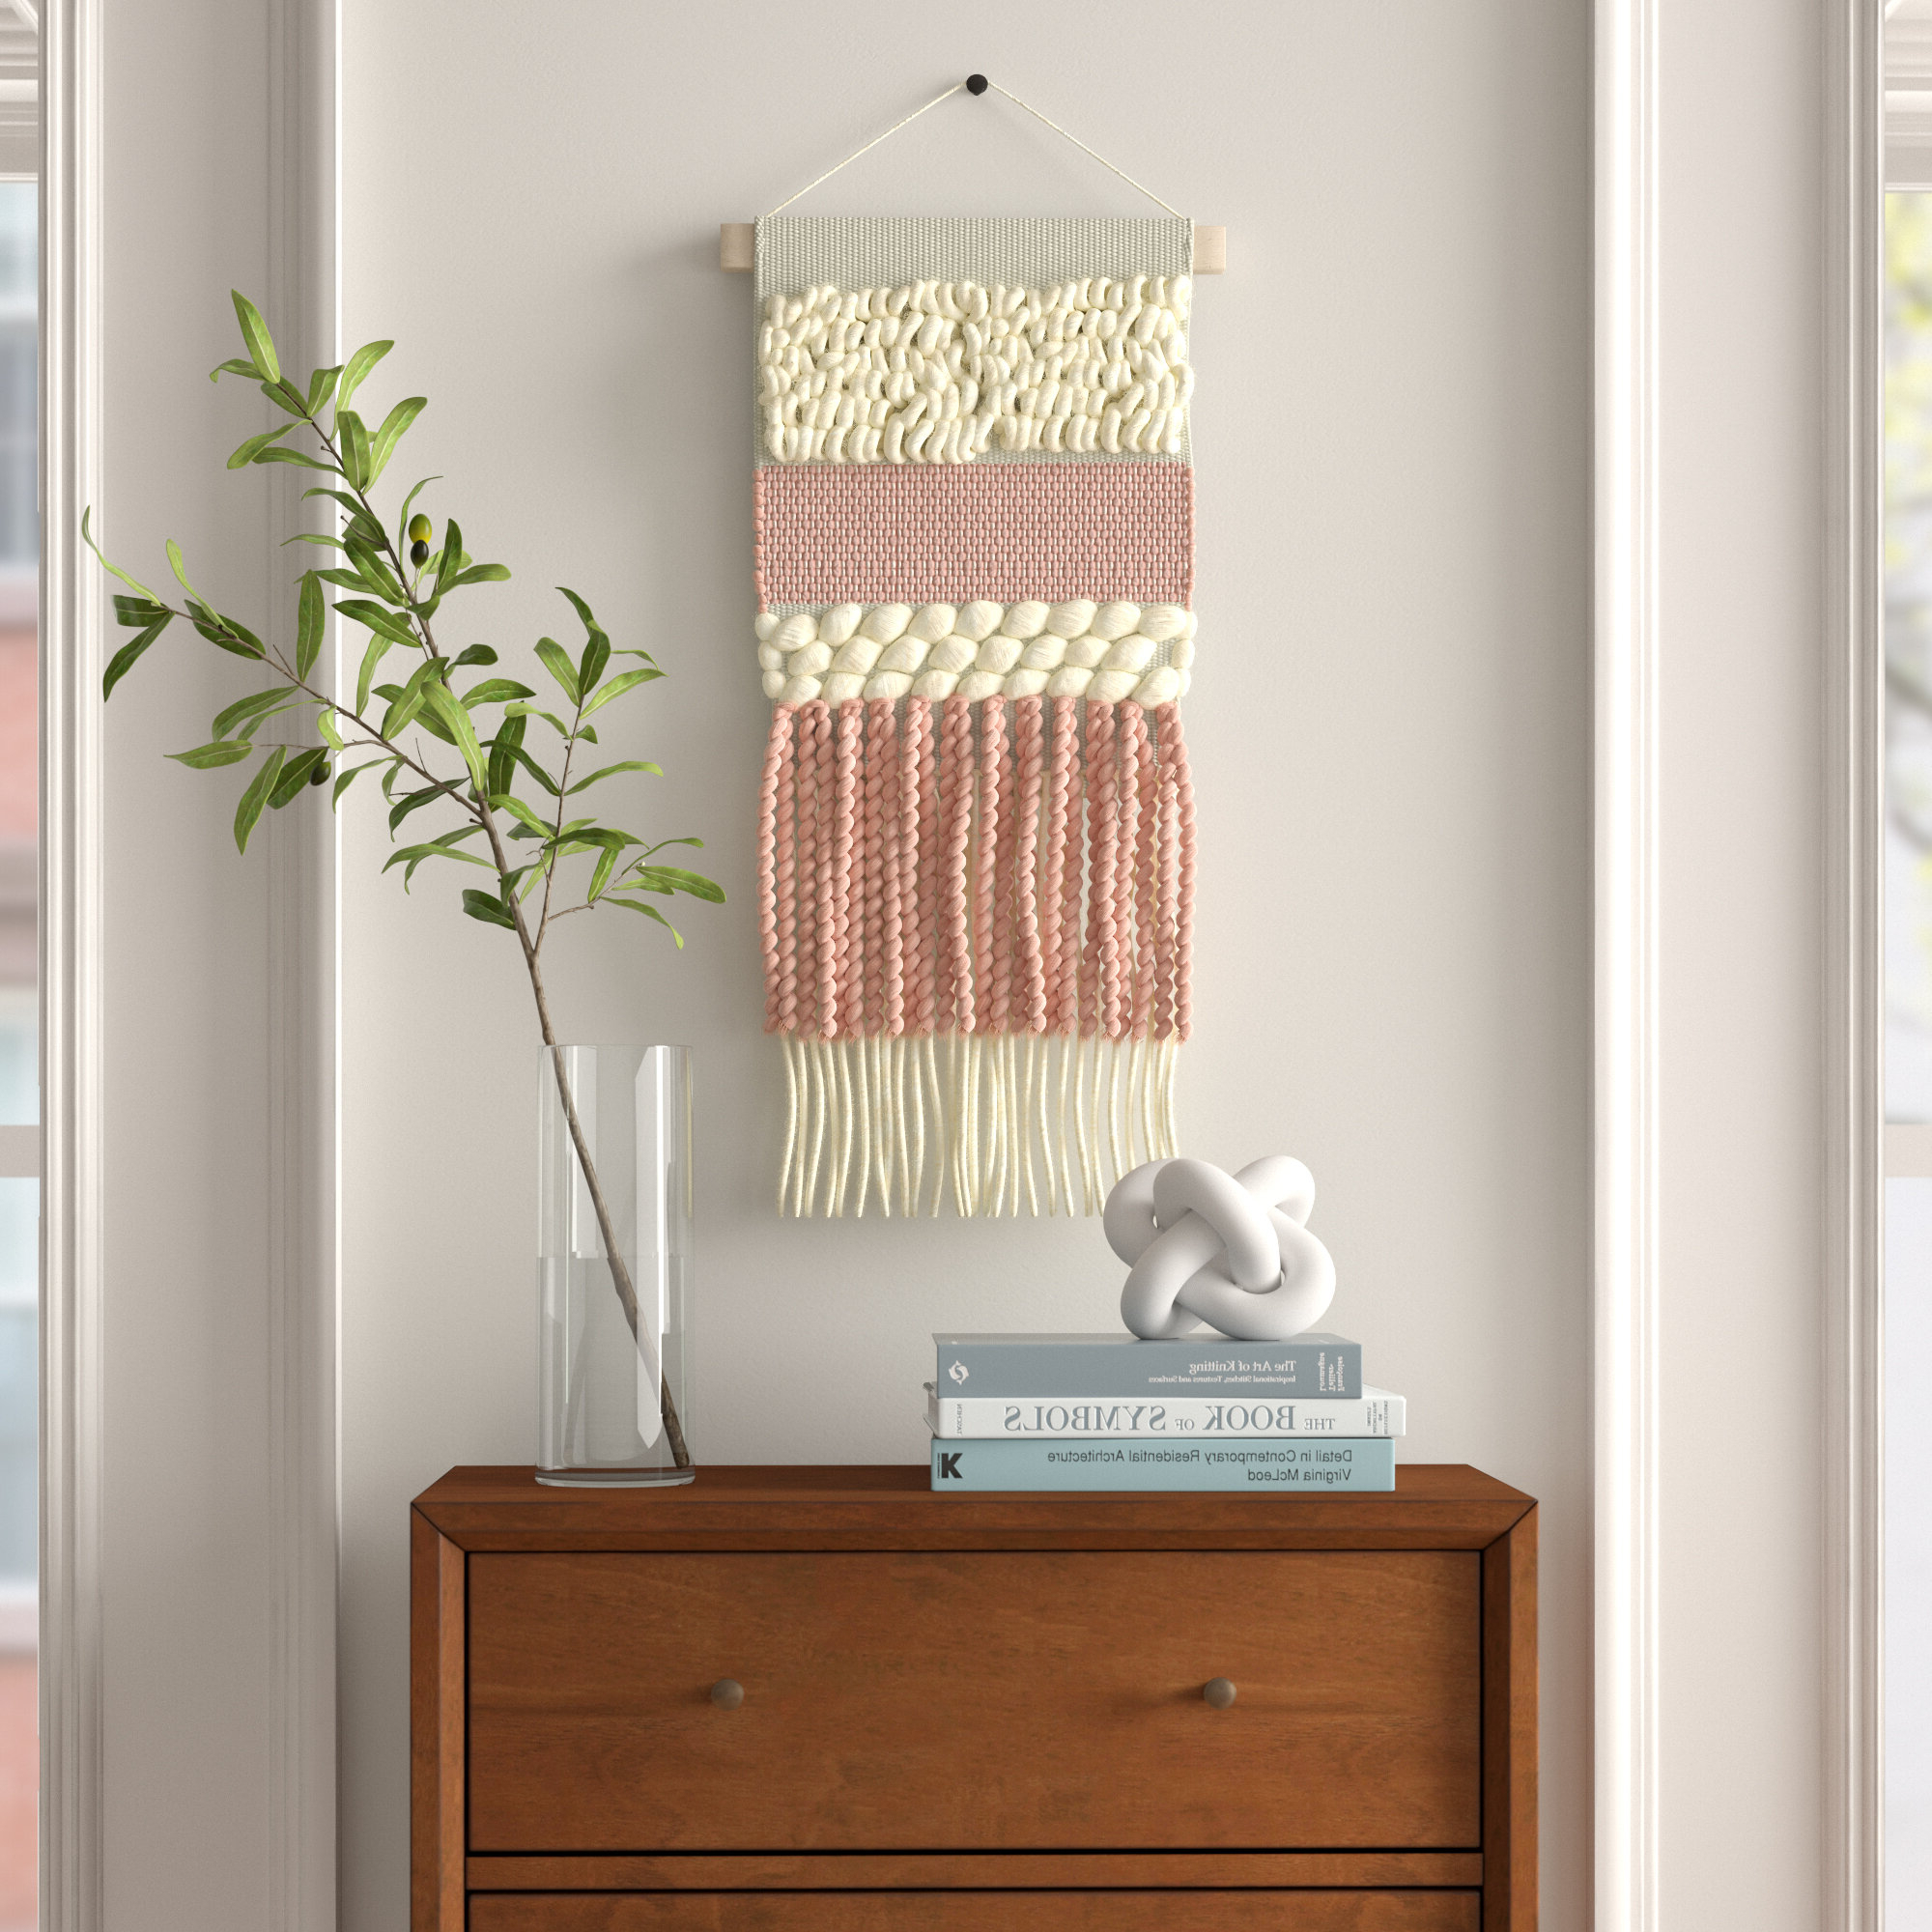 Well Liked Blended Fabric Hohl Wall Hangings With Rod Pertaining To Wall Hanging With Hanging Accessories (View 4 of 20)